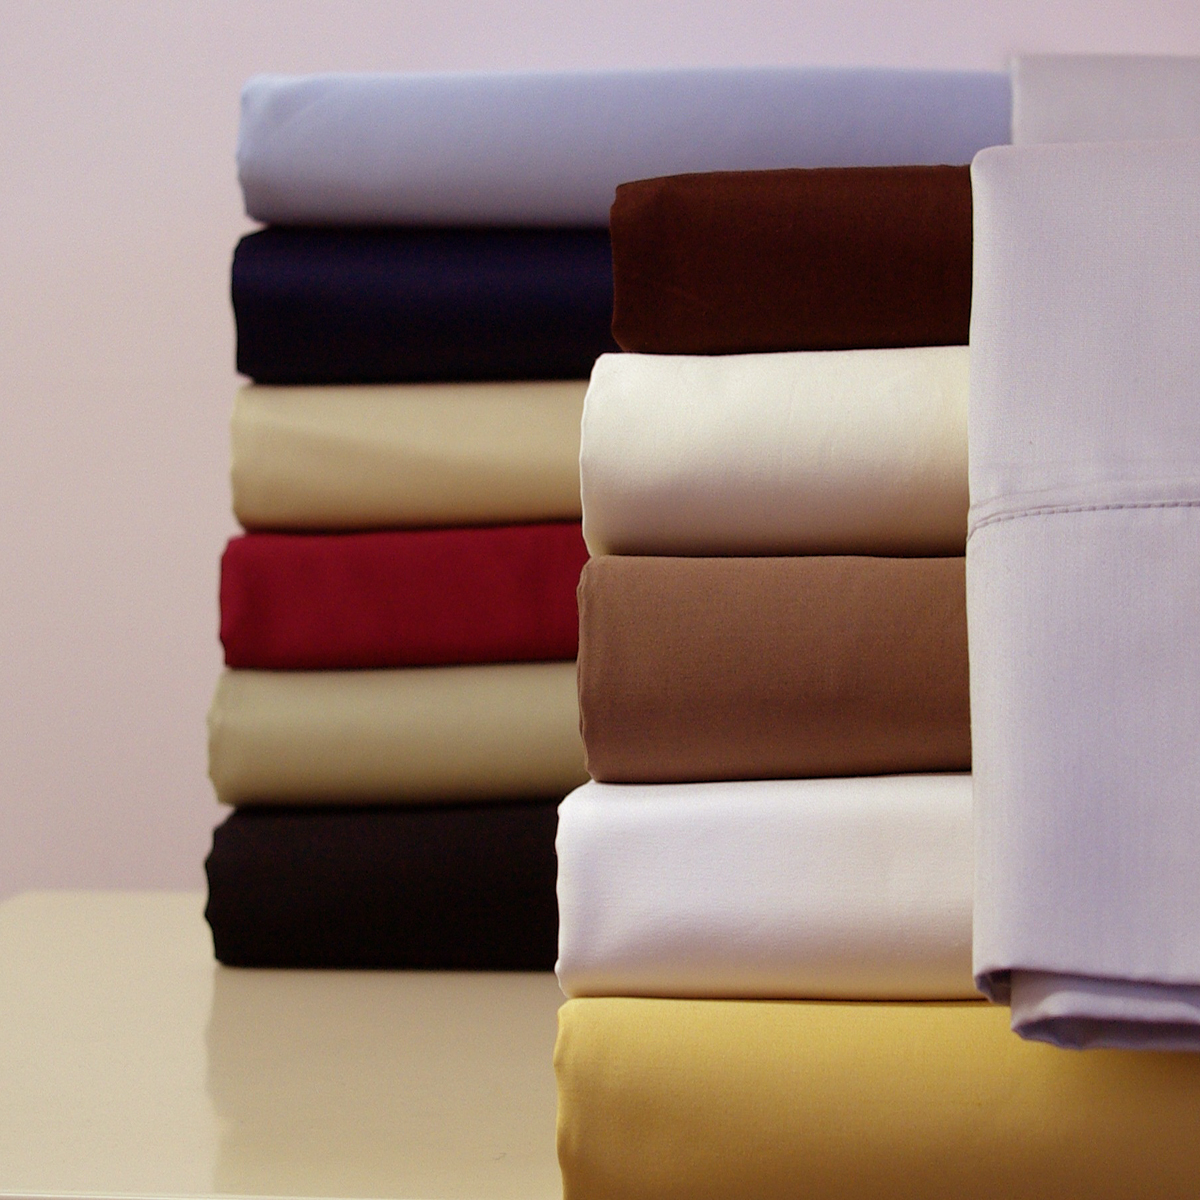 Royal Tradition. 300 Thread count Solid 100-Percent Egyptian cotton. Wrap yourself in the Softness of the luxurious 300 Thread count, 100% Egyptian cotton sheets like those found in World Class Hotels. Imported from the Land of Cleopatra, these fine luxury bed linens are carfted from long staple Giza cotton grown in the Lush Nile River Valley since the time of the Pharaohs. Comfort, quality and opulence set our luxury bedding in a class above the rest. Elegent yet durable, their softness is enhanced with each washing.